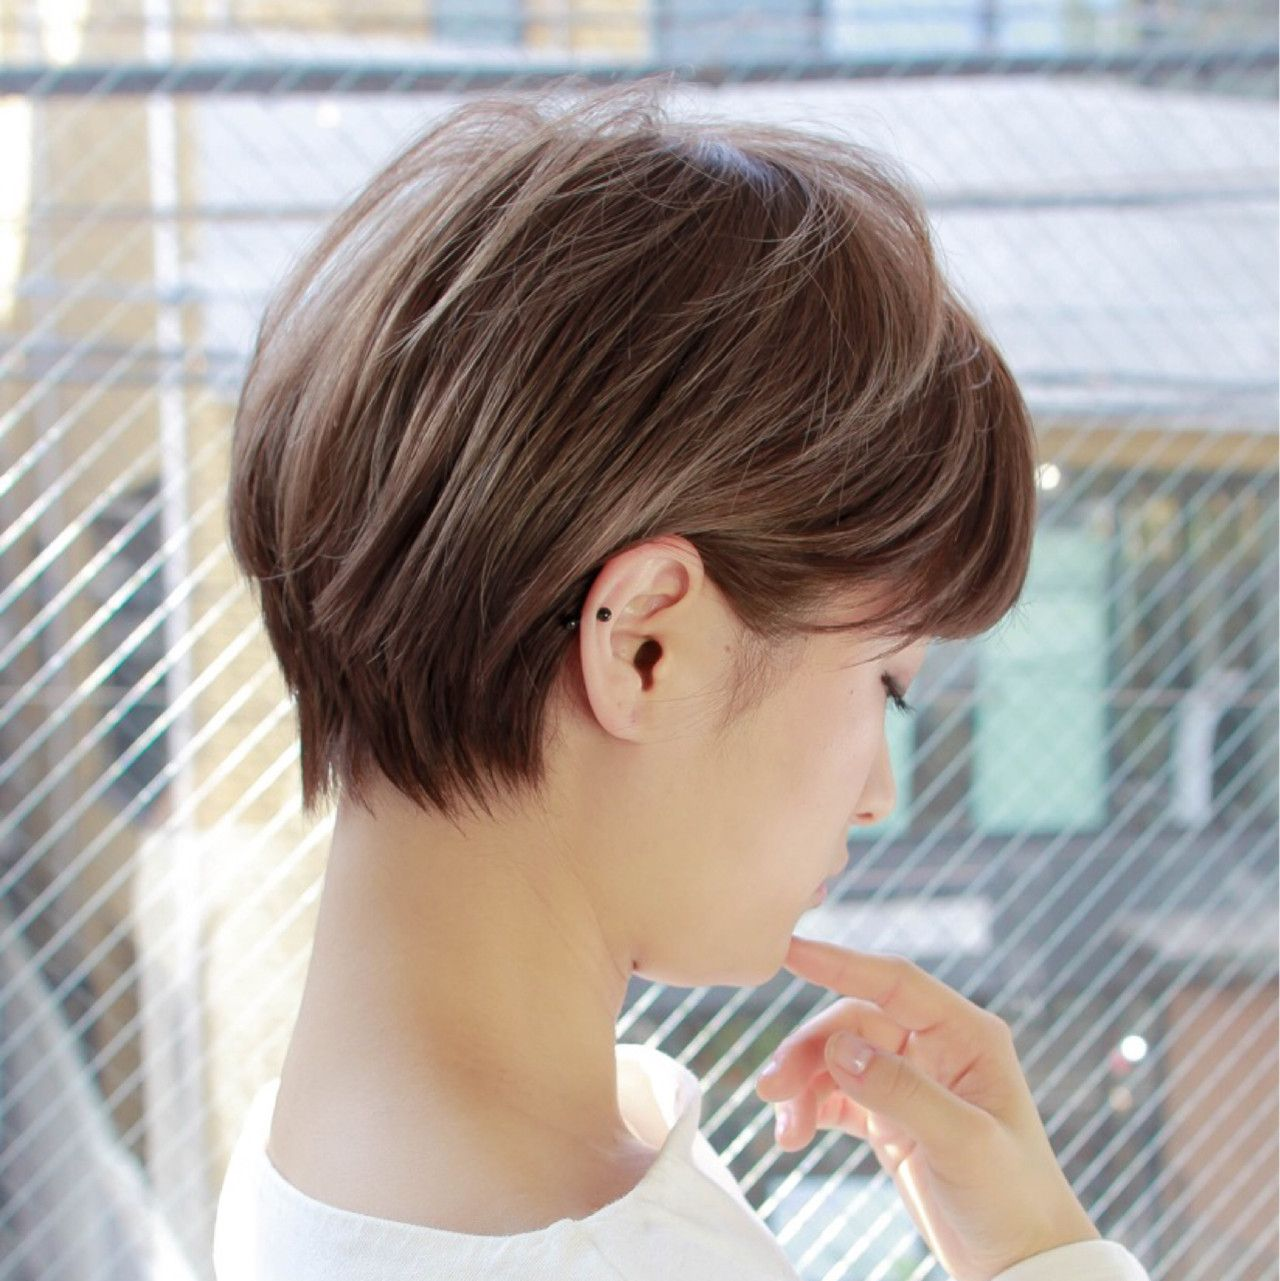 Photo of HAIR (hair) is a hair style that stylist models send.